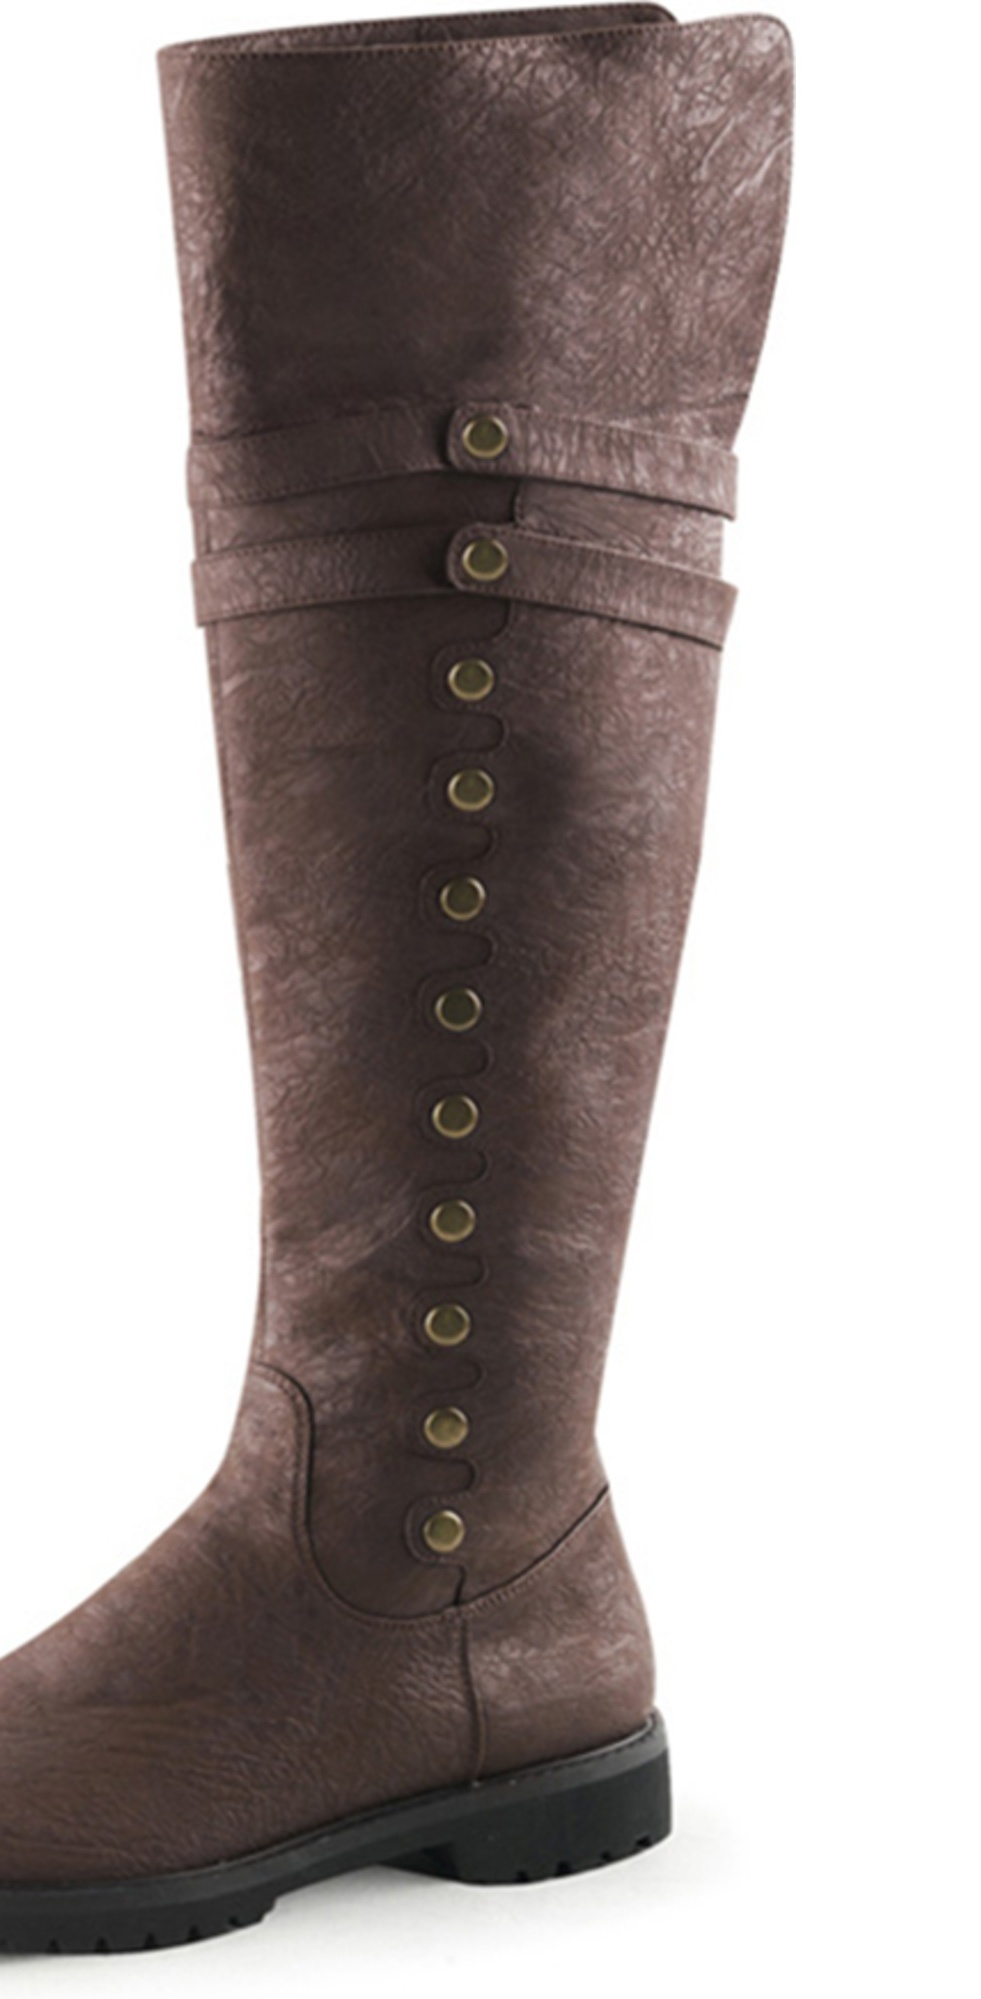 0ad71fff9a1 Men Brown Boots Knee High Pirate Boots with Fold Over Cuff and 1.5'' Flat  Heels